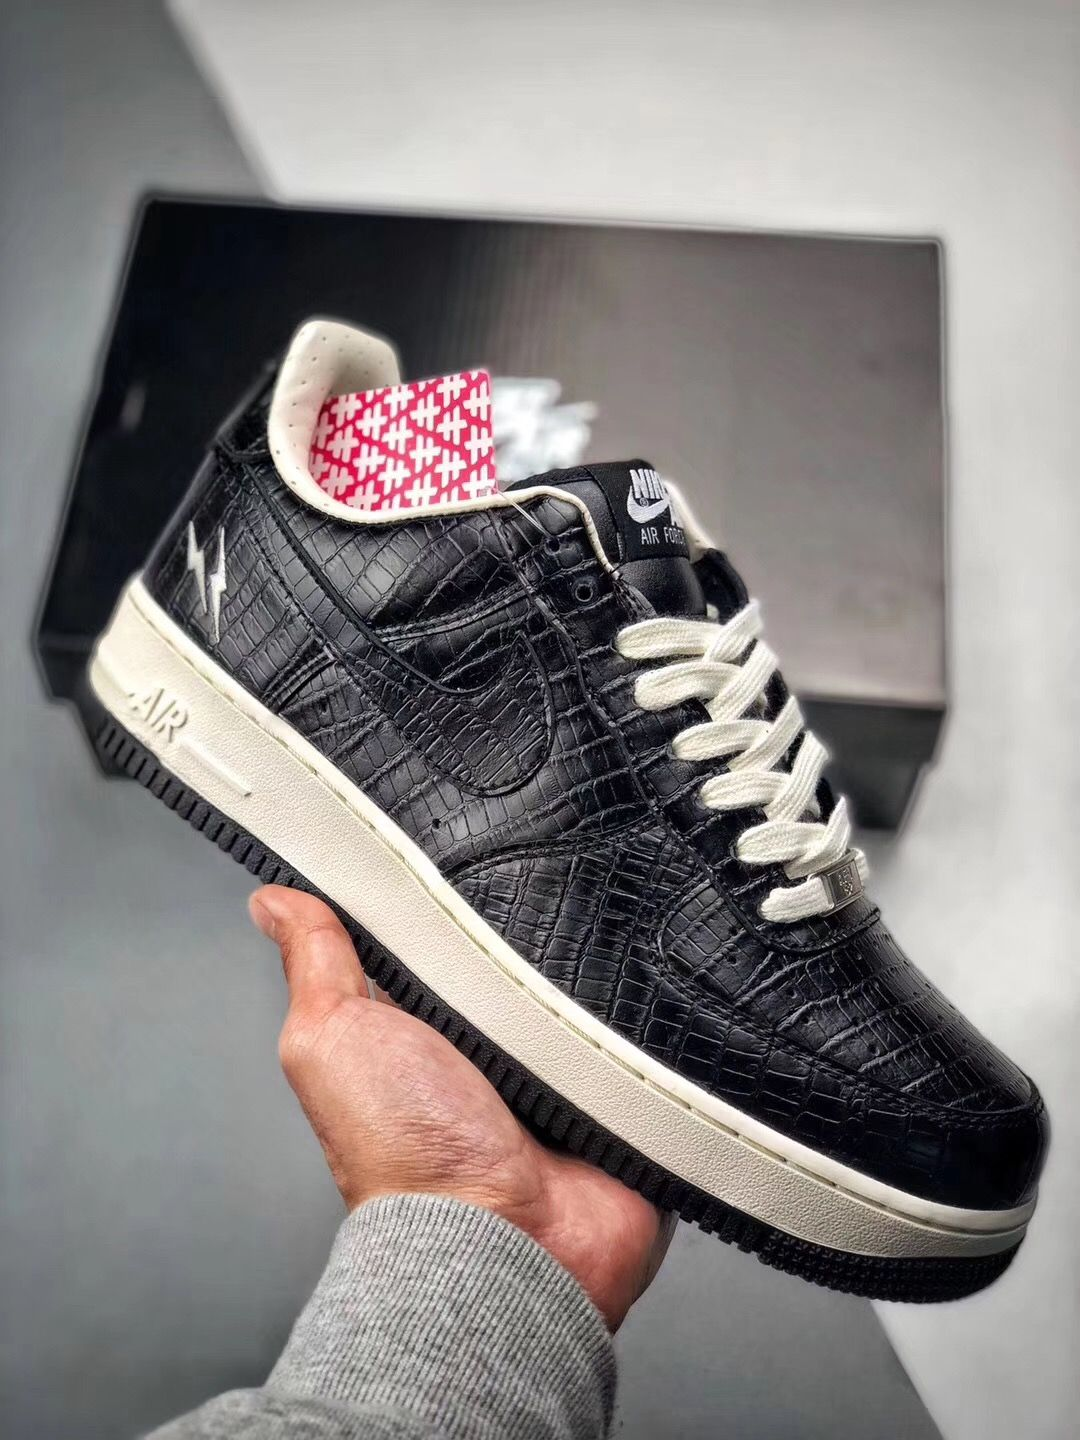 promo code d1a34 61a2a NIKE AIR FORCE 1 AF1 fragment 305895-002